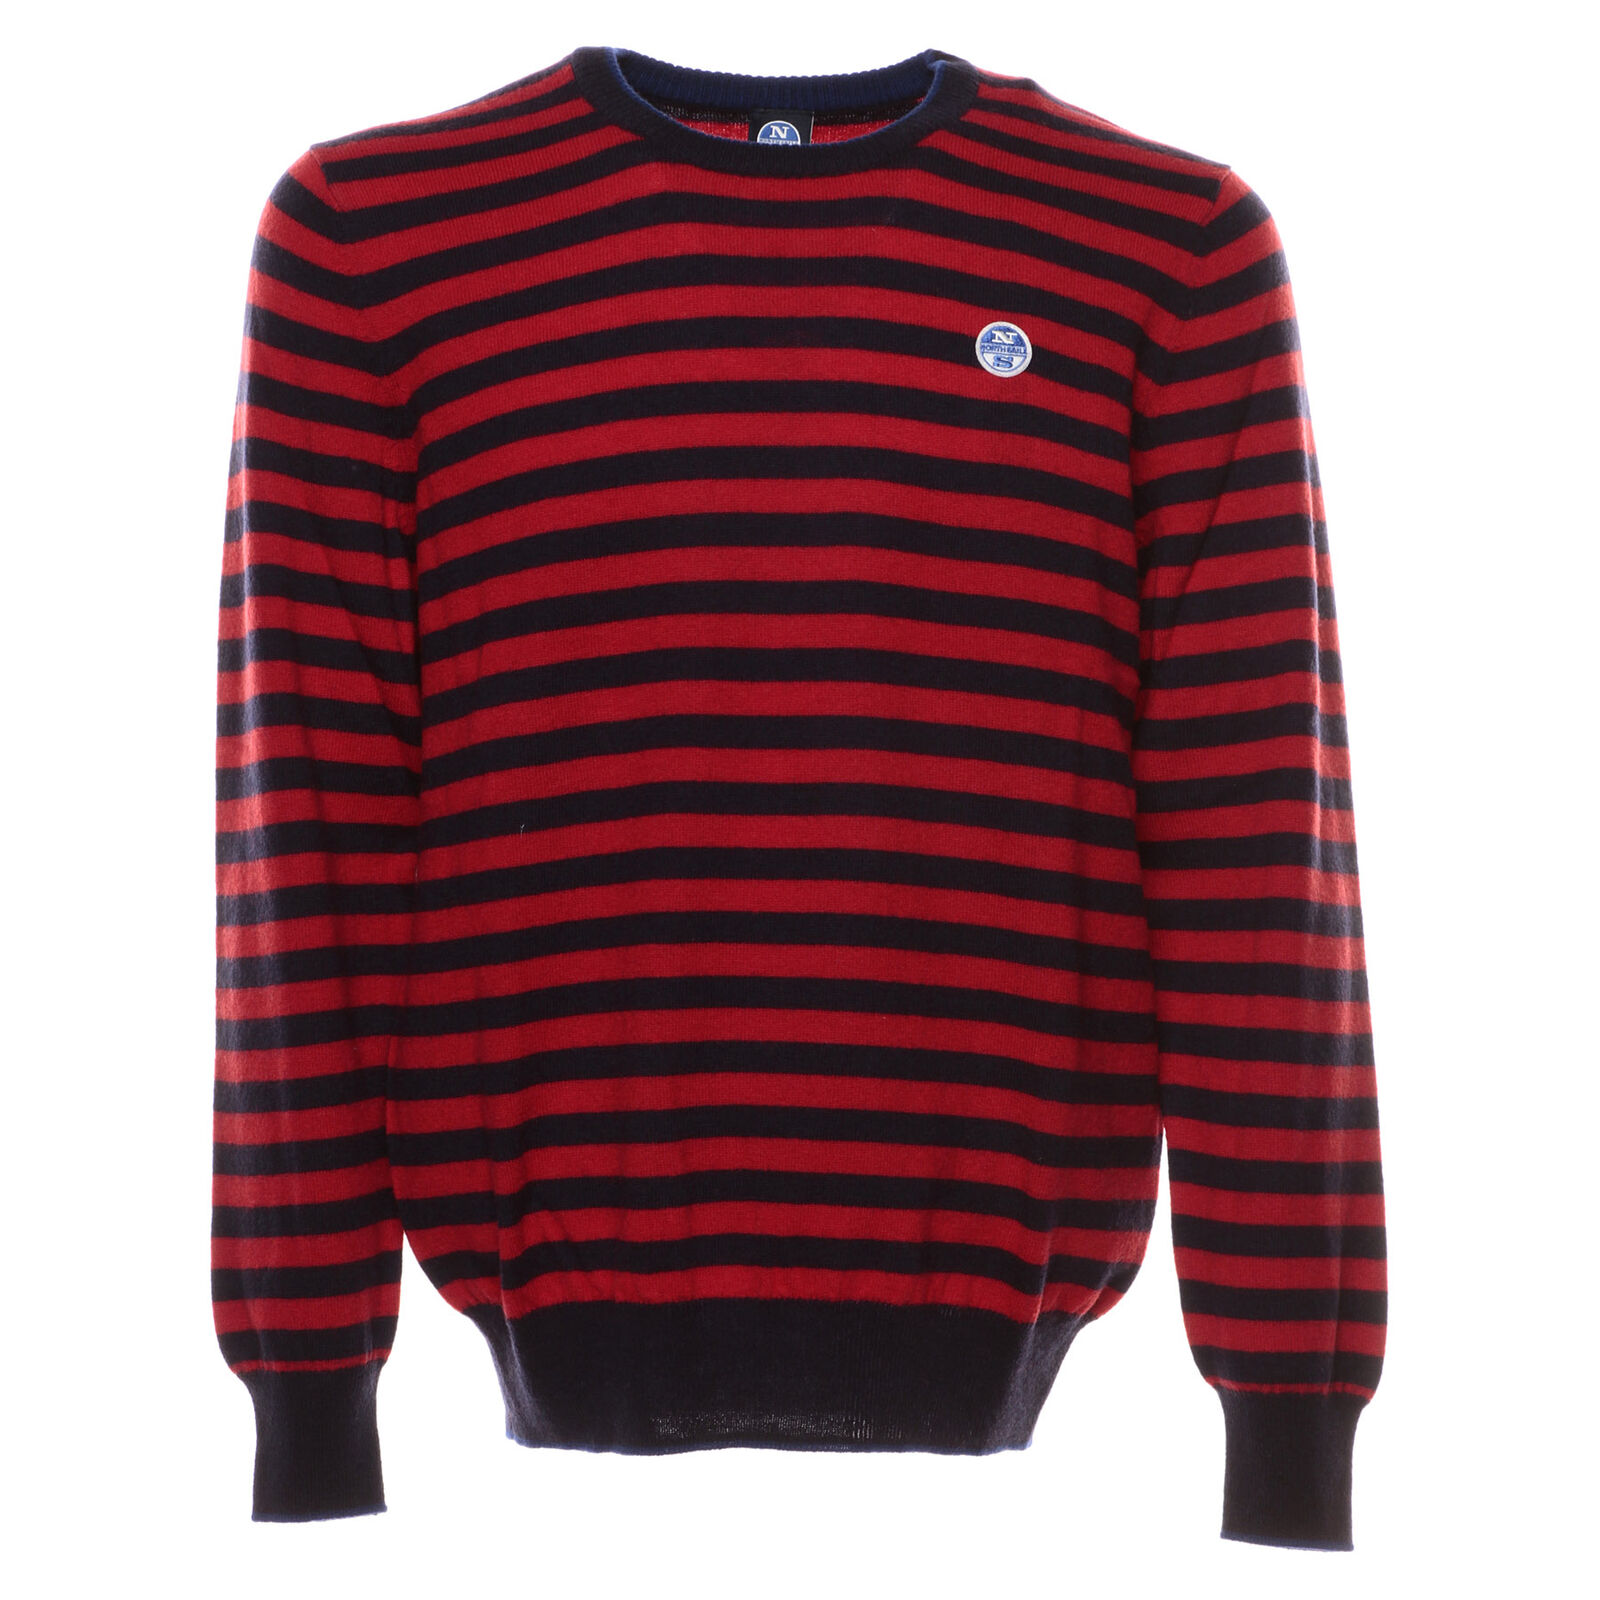 NORTH SAILS STRIPED ROUND NECK MAGLIONE UOMO 699348 C002